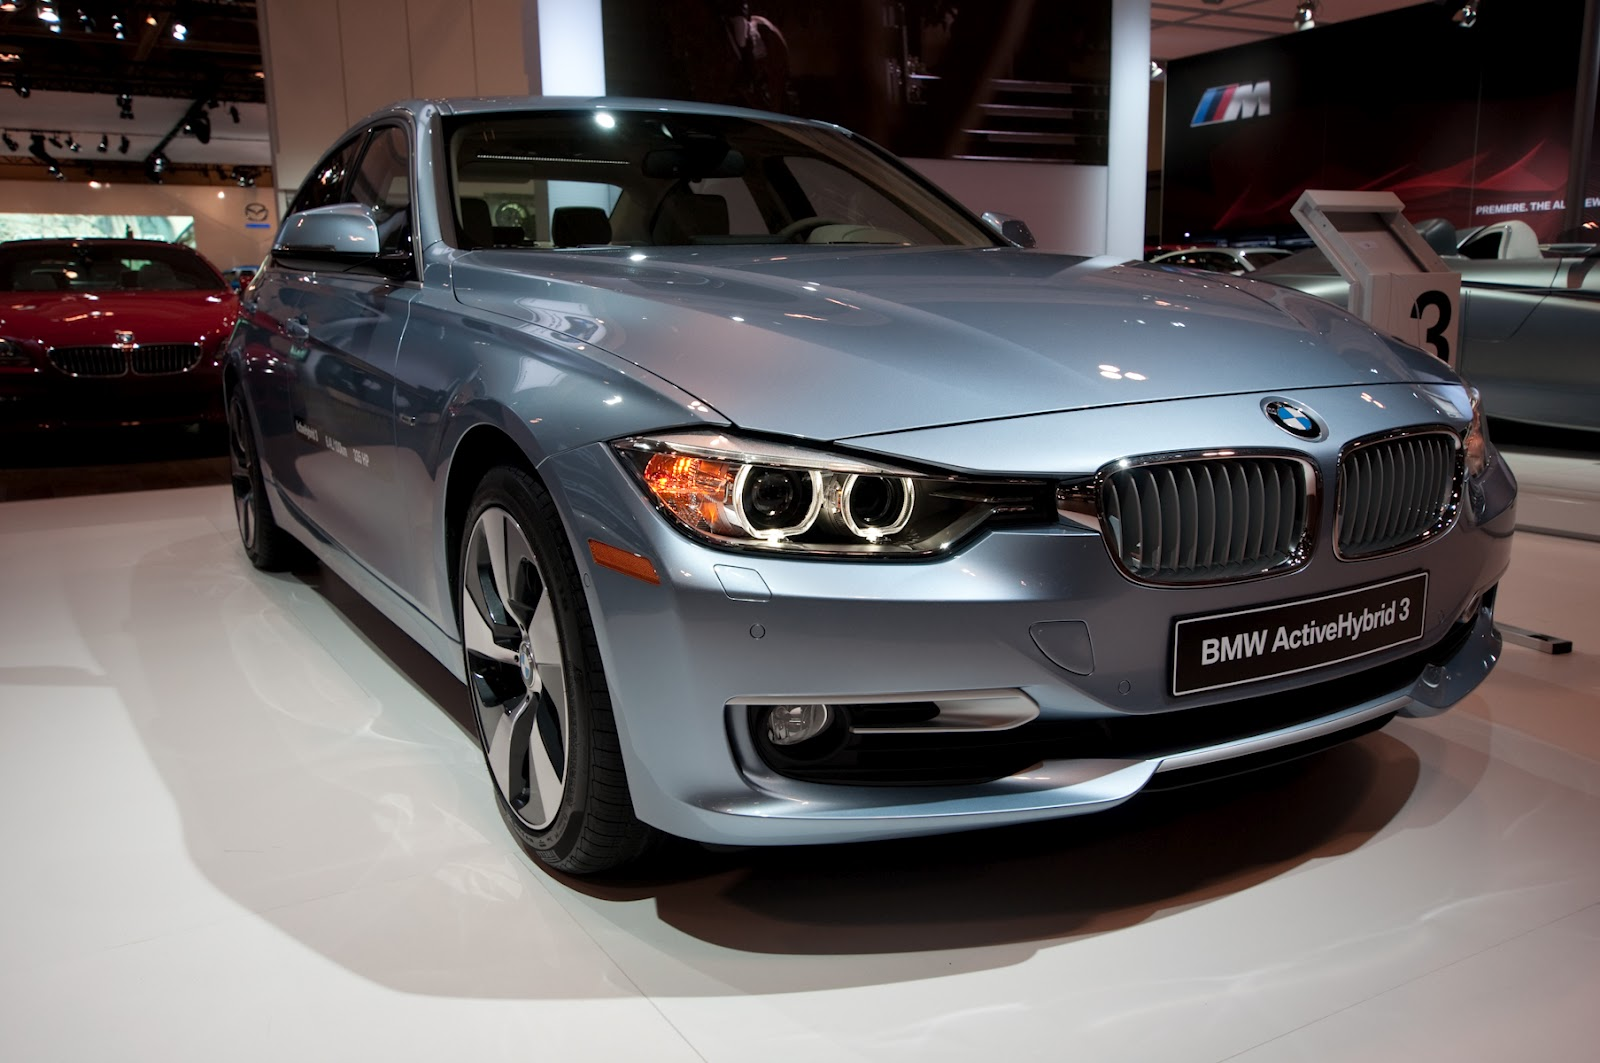 bmw 3 series active hybrid 2013 car barn sport. Black Bedroom Furniture Sets. Home Design Ideas